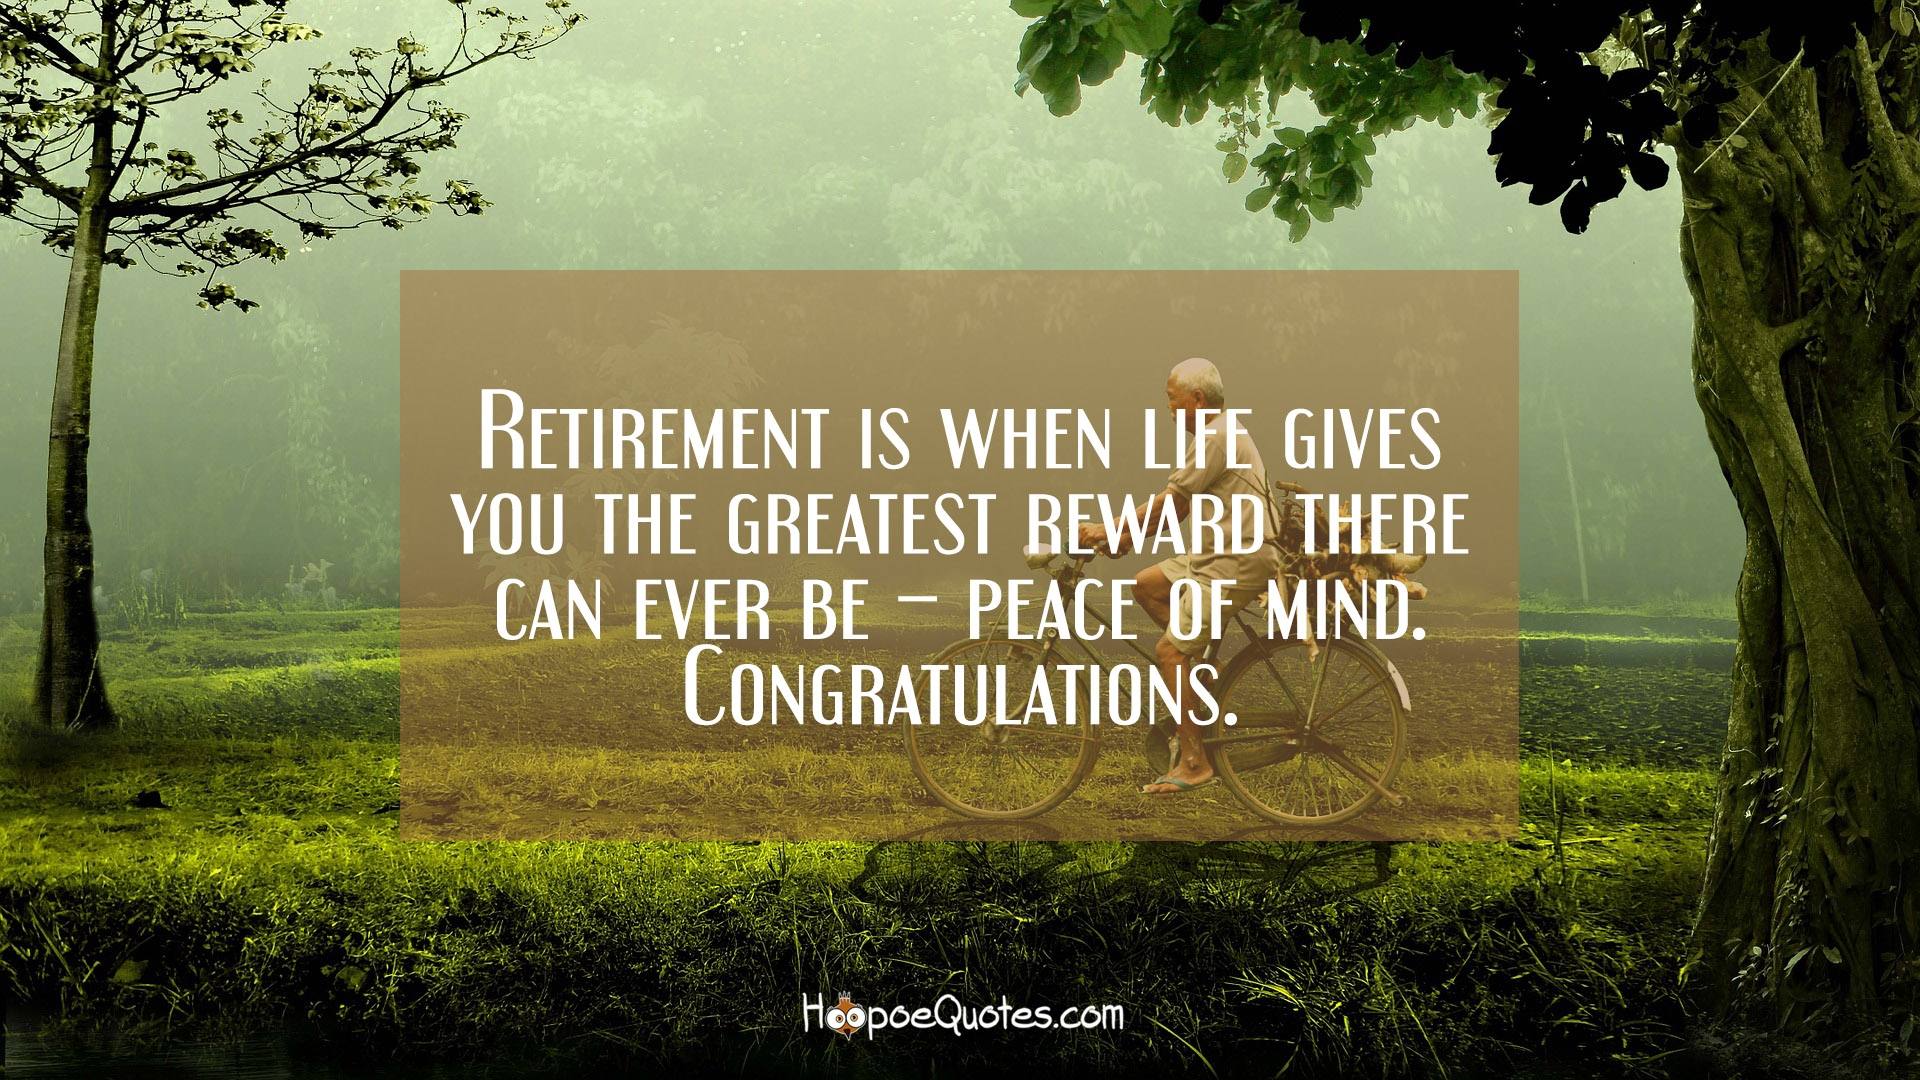 Retirement Is When Life Gives You The Greatest Reward There Can Ever Be Peace Of Mind